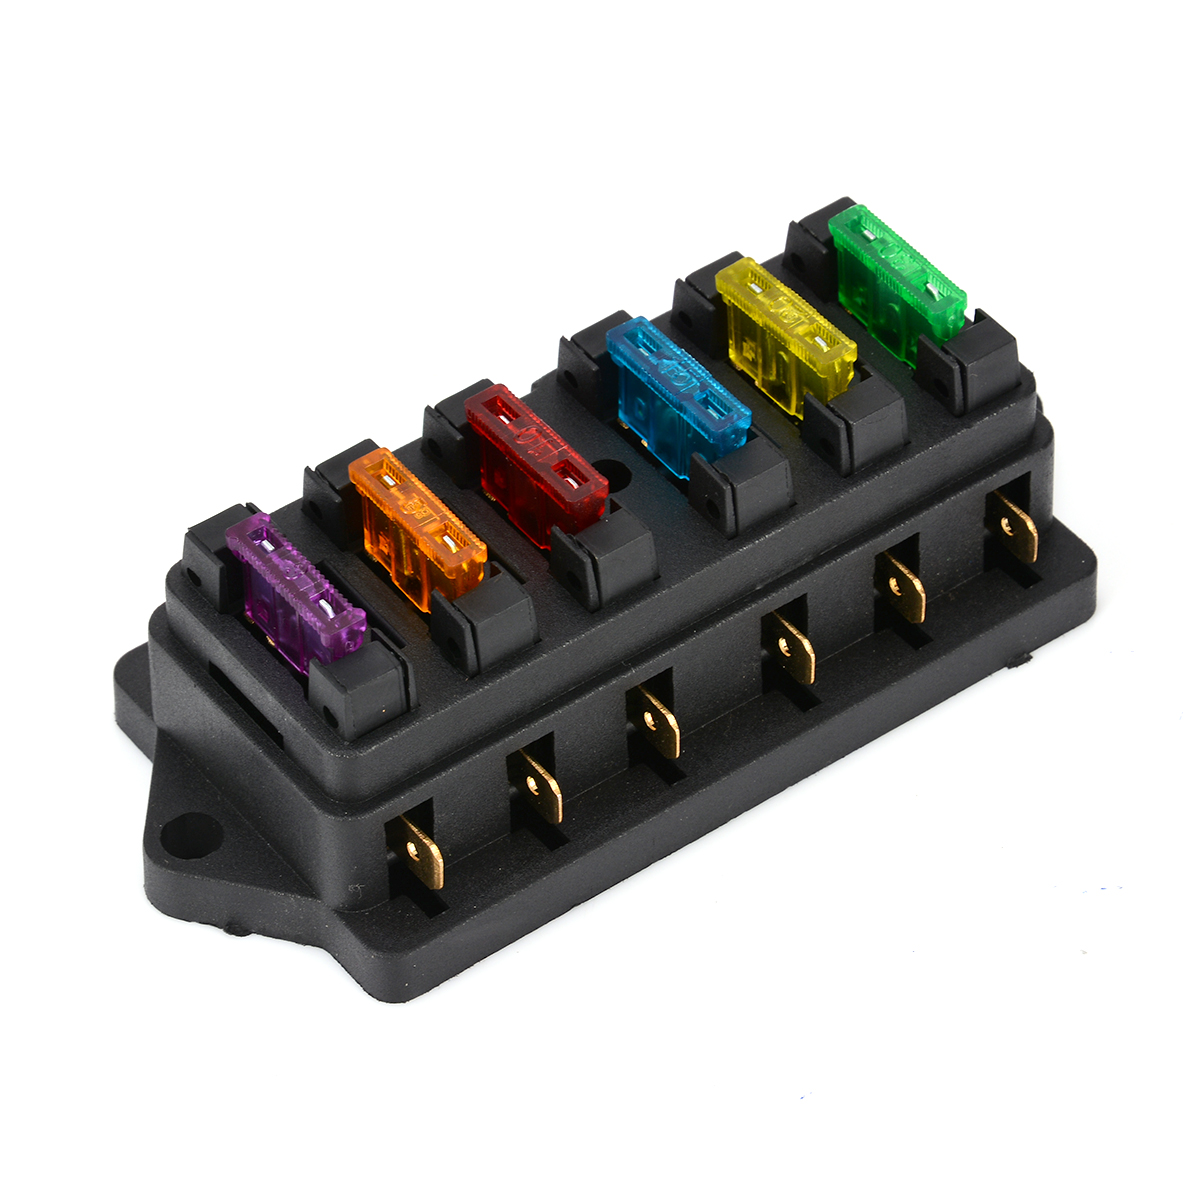 1pc 6.3mm 6 Way Circuit Standard Blade Fuse Holder DC12V/24V with 6 Fuses For Auto Car Accessories